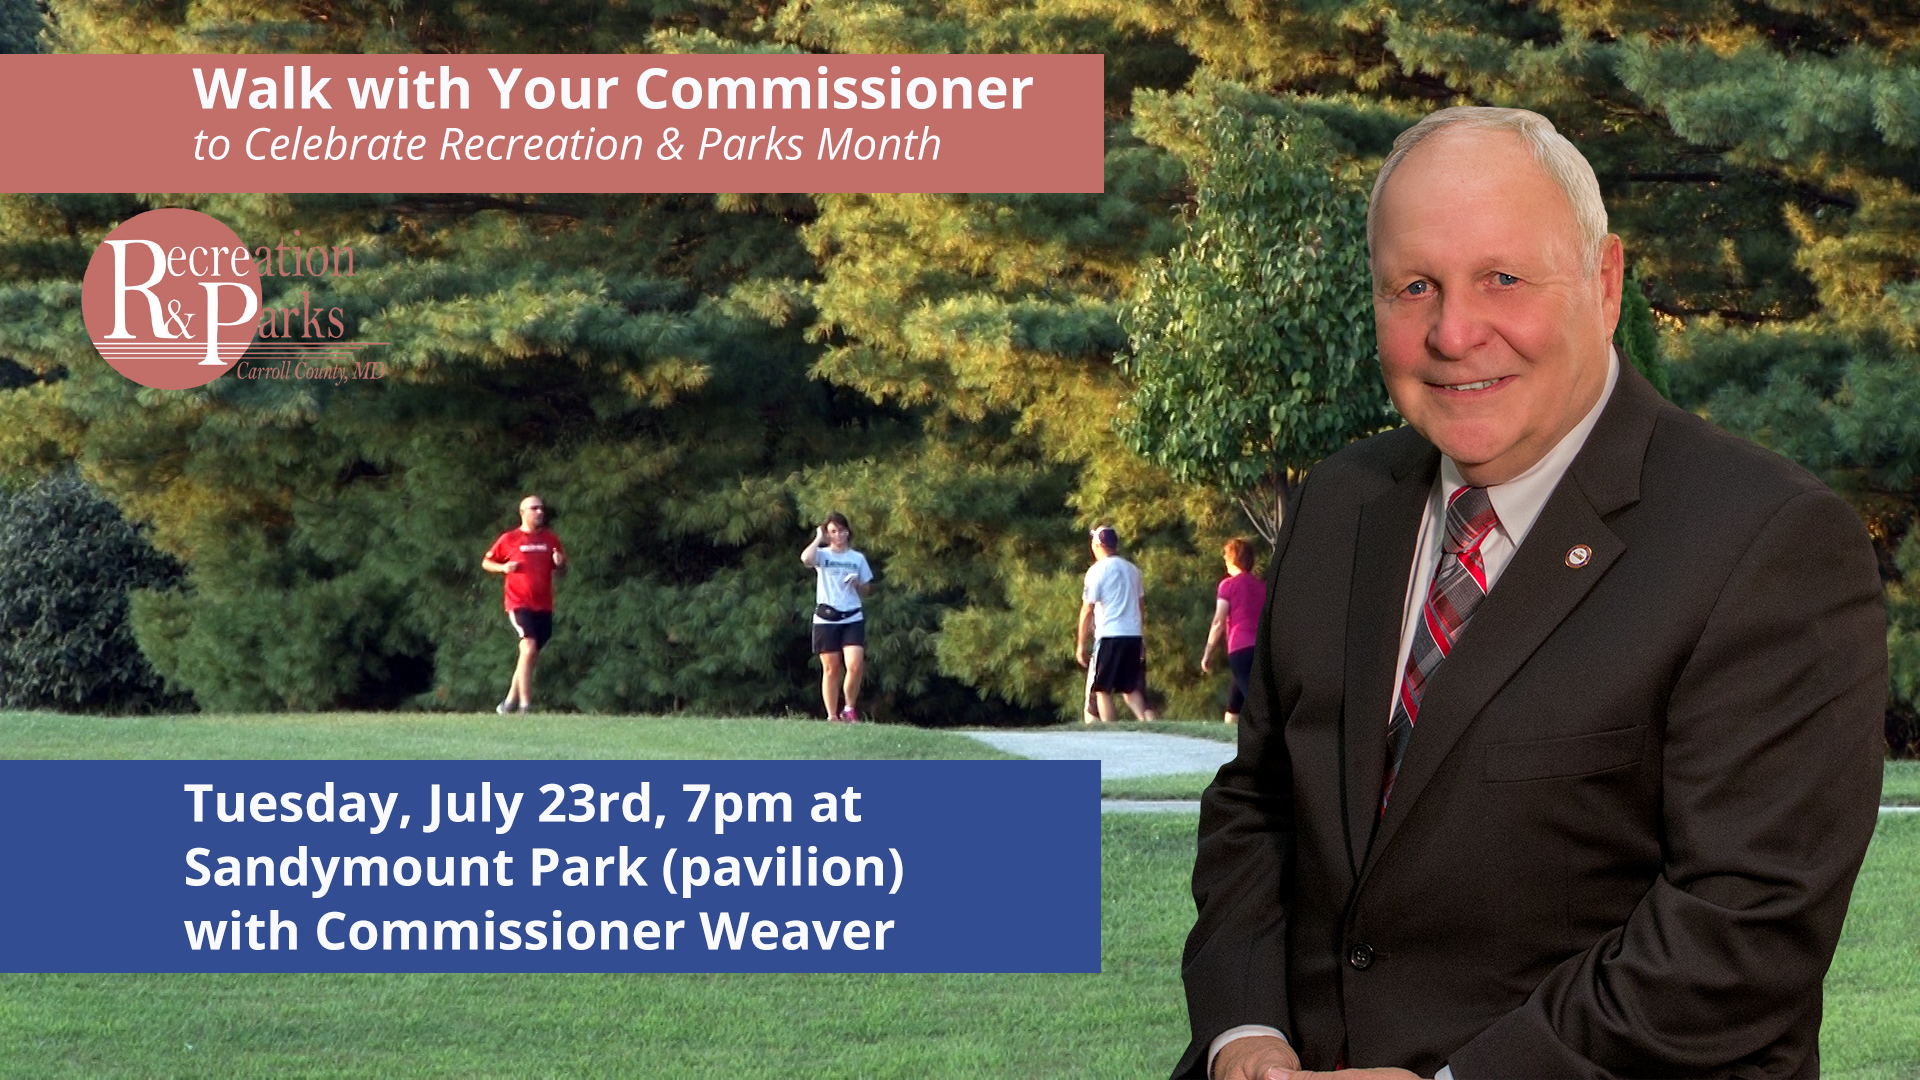 Walk with Commissioner Weaver